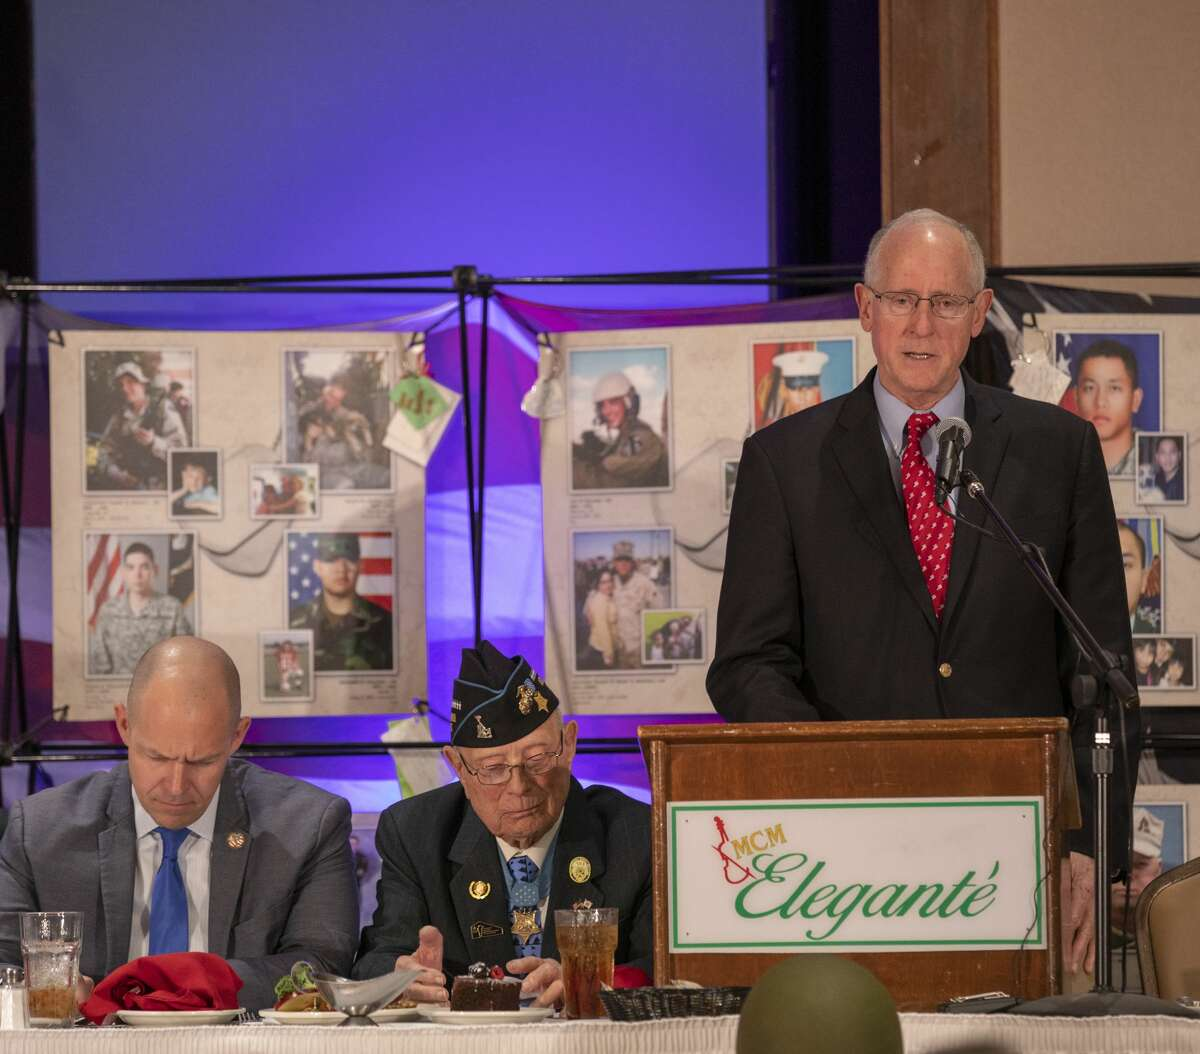 U.S. Rep. Mike Conaway speaks on Thursday during the Stand in Honor dinner at the MCM Elegante.